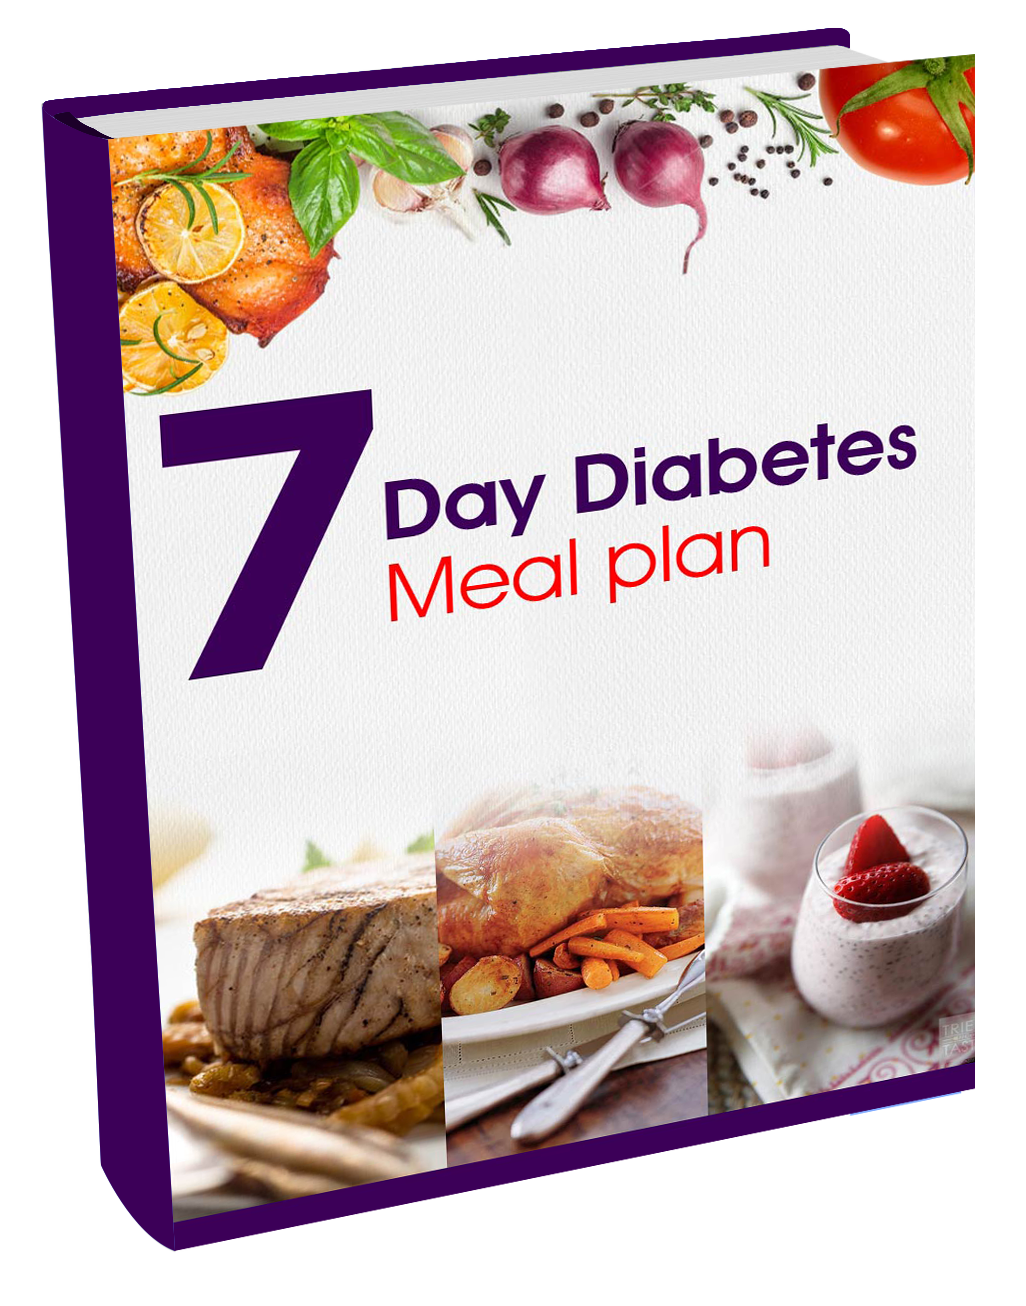 7 day diabetes meal plan book cover